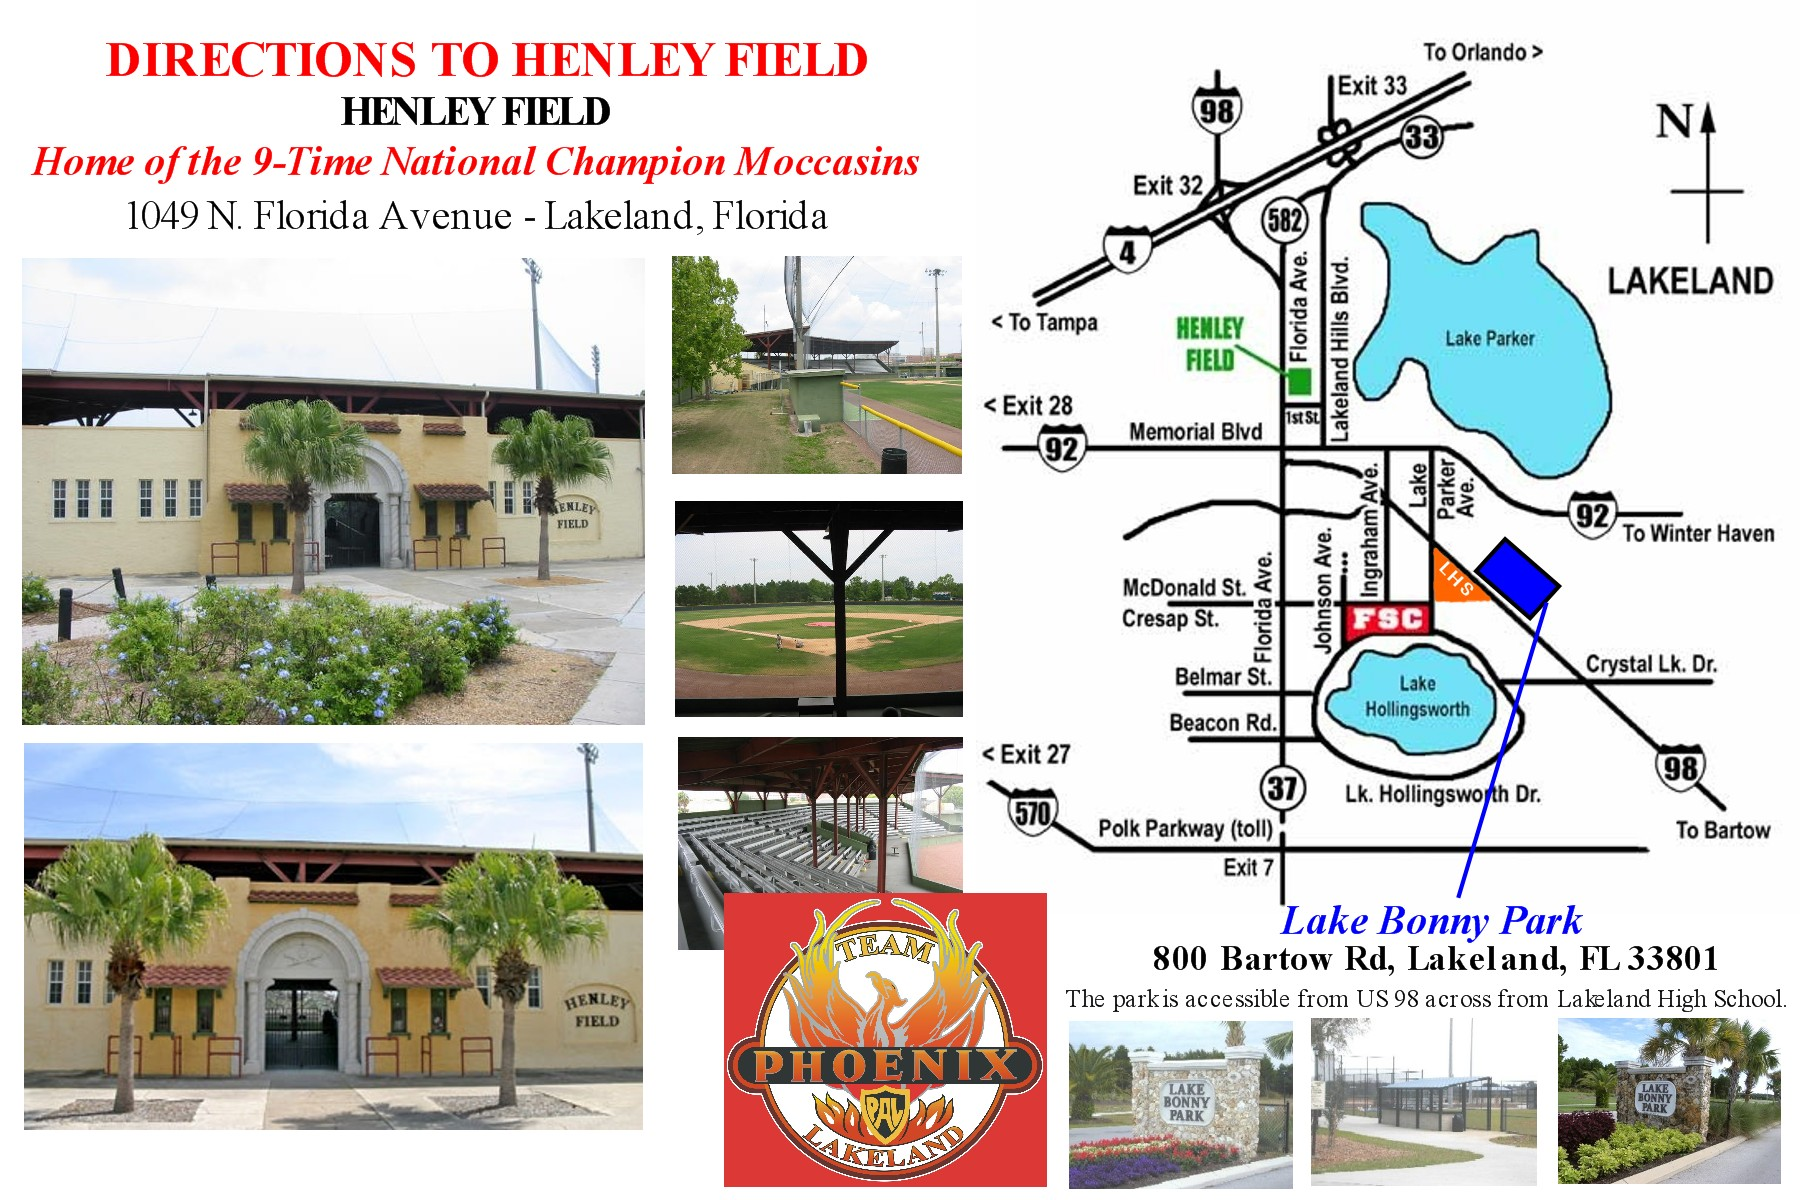 Henley Field and Lake Bonnie